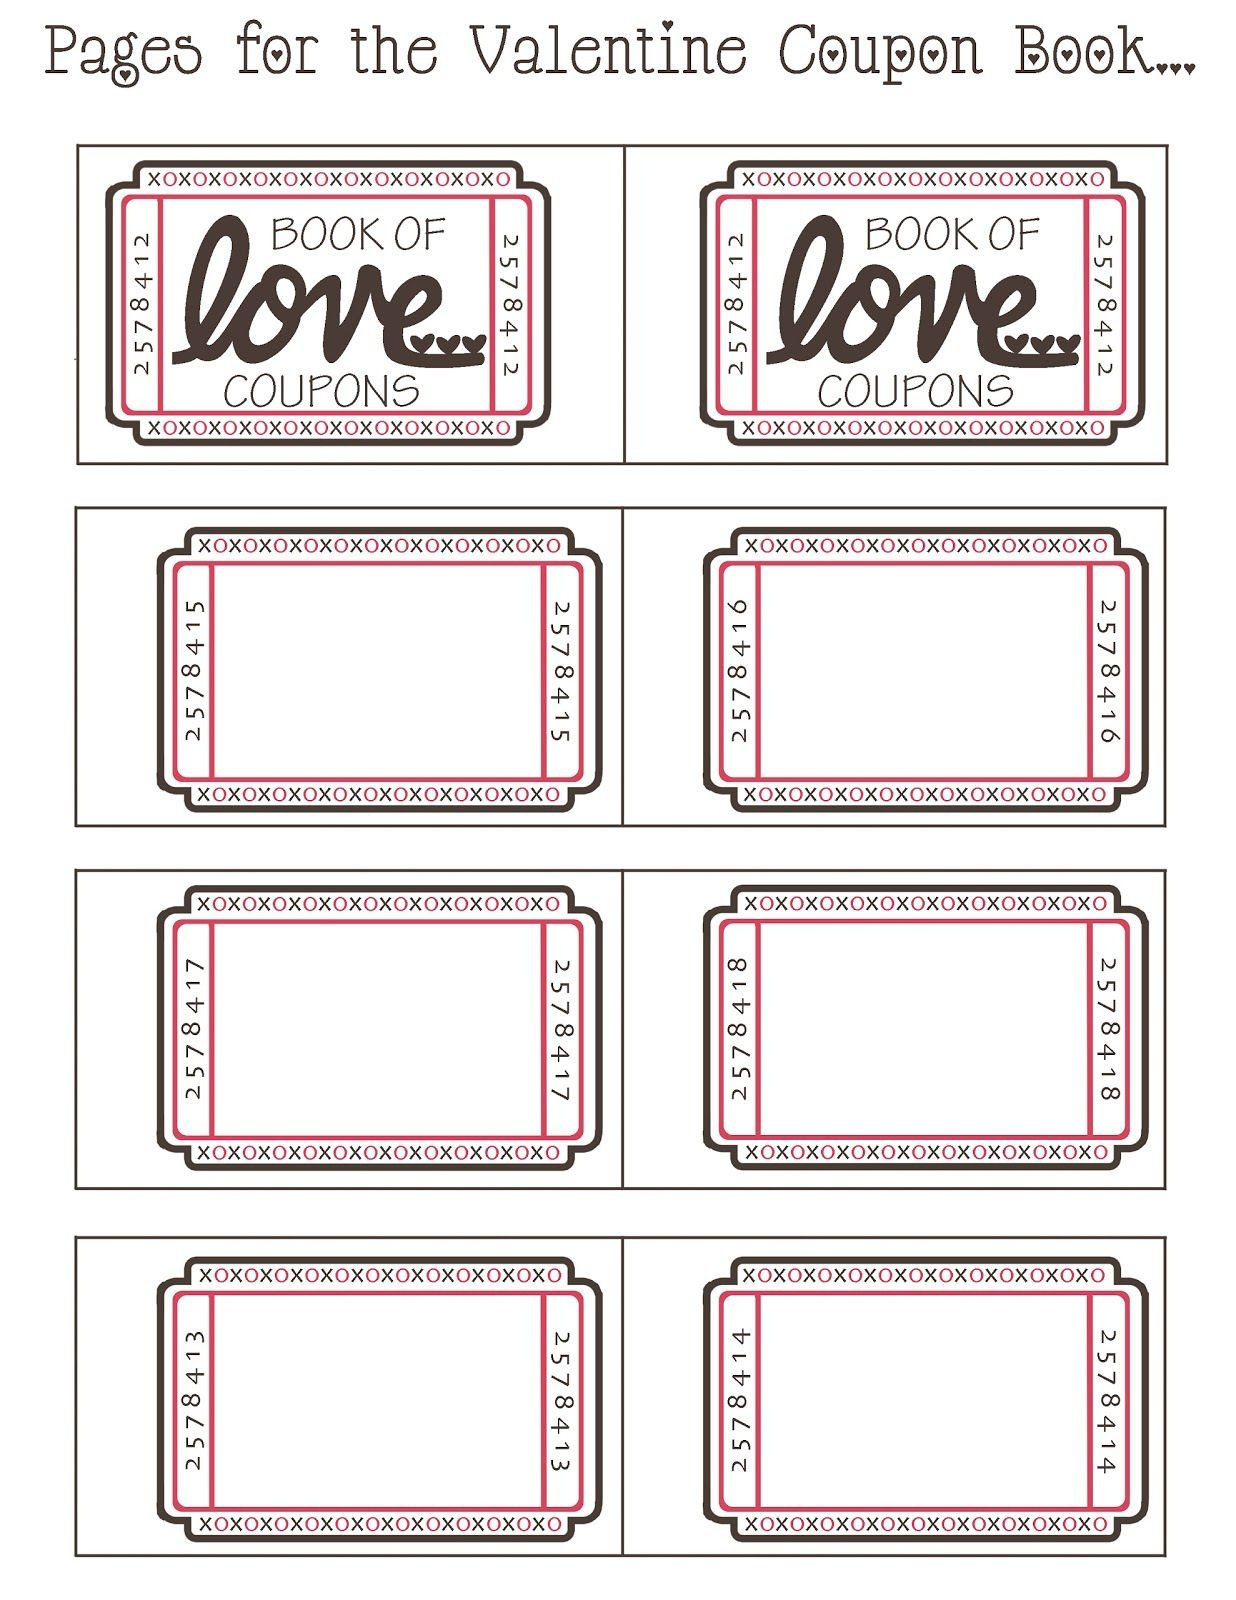 Coupon Book Ideas For Husband. Blank Love Coupon Templates Printable - Free Printable Coupons For Husband